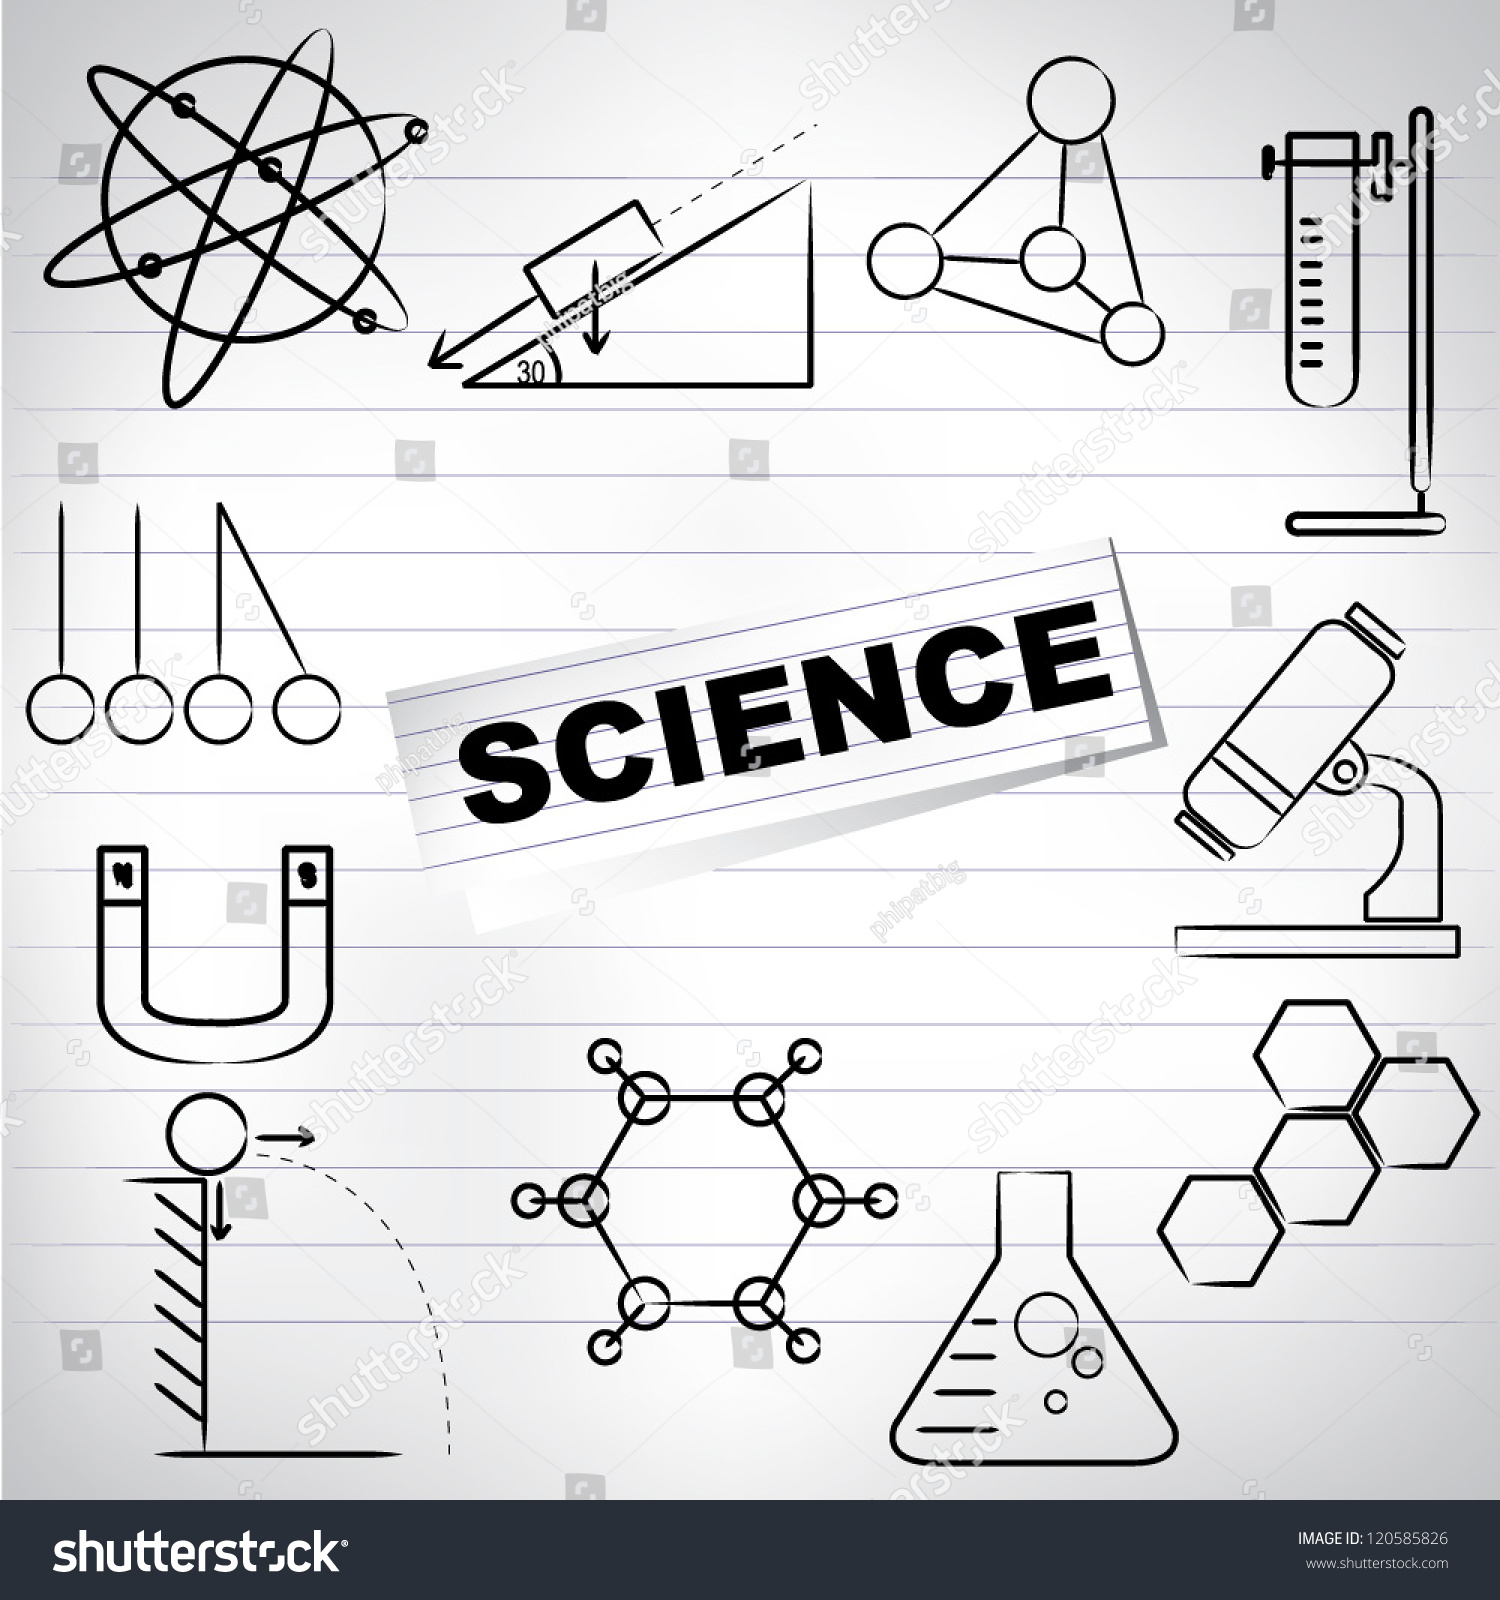 science drawing background paper line shutterstock vector lightbox save